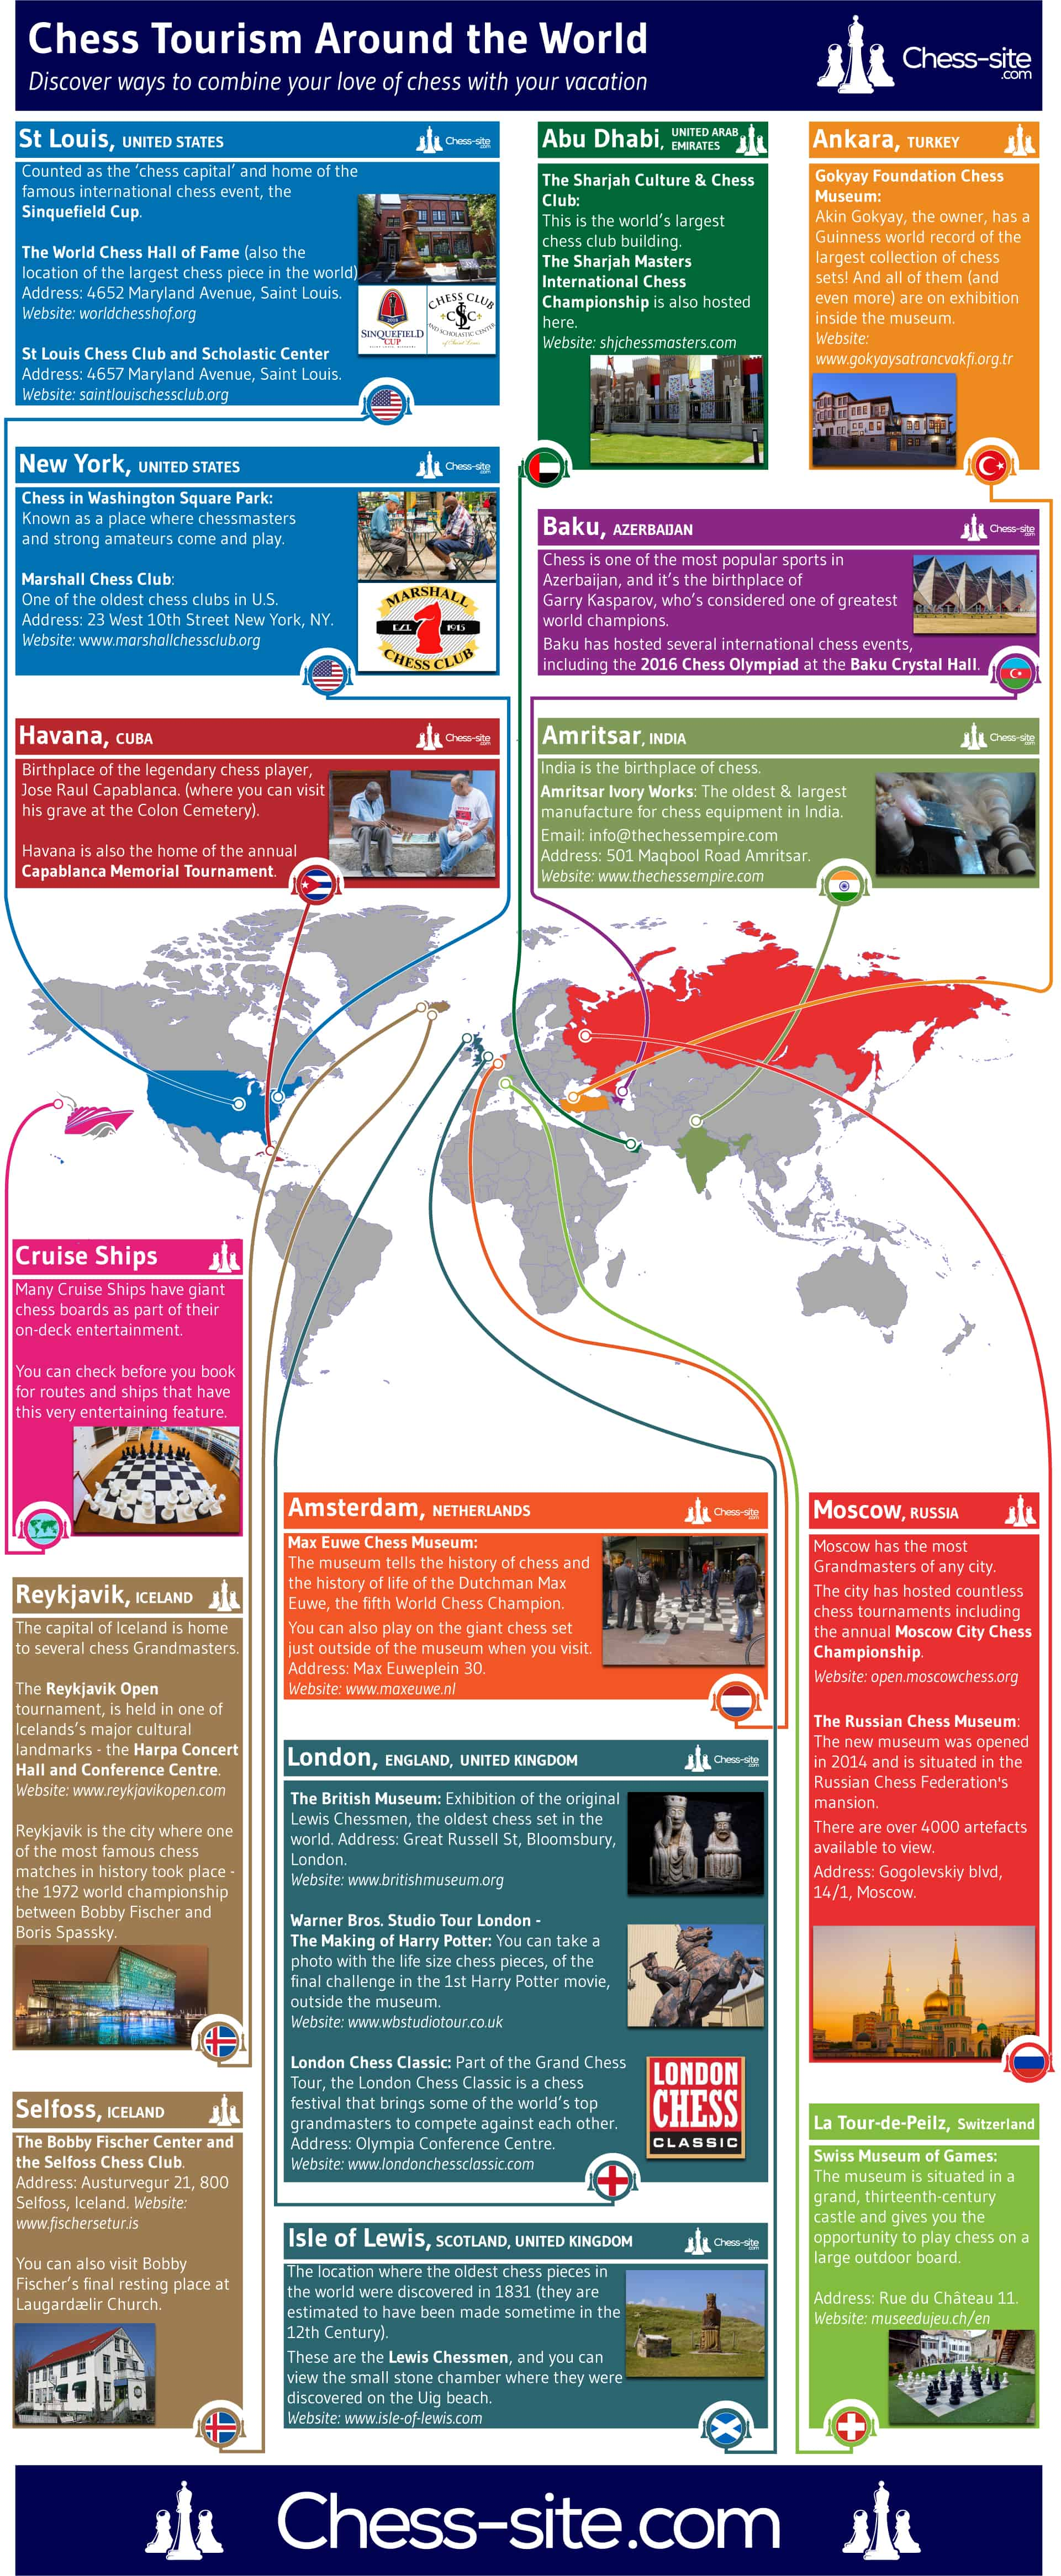 Chess Traveling Tourism Infographic Image